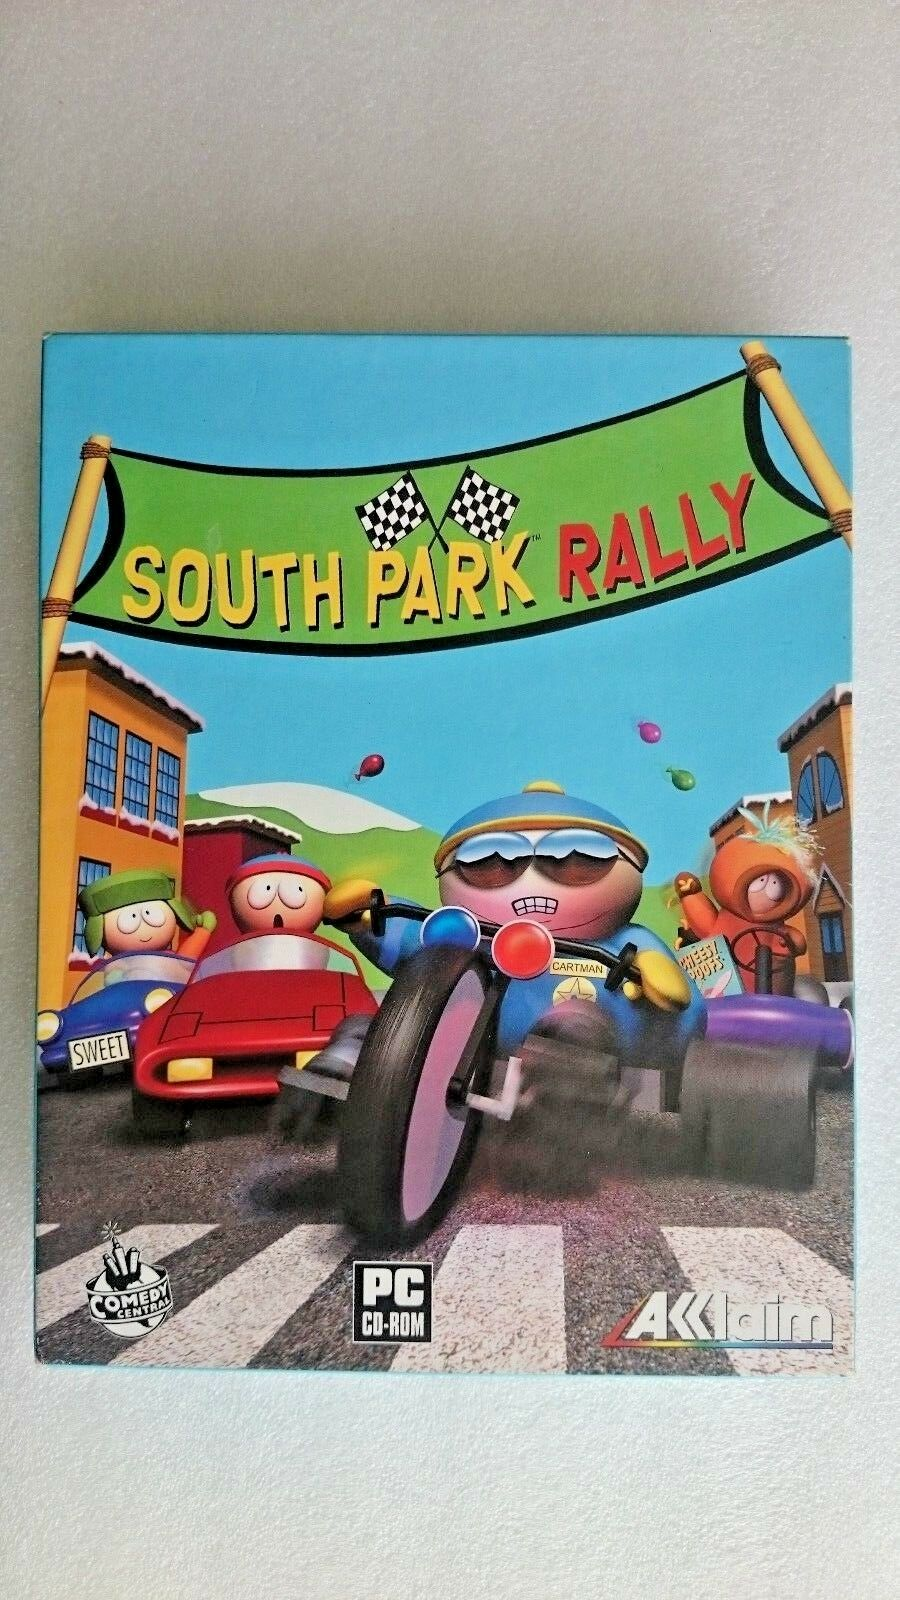 South Park: Rally (PC: Windows, 2000) - Big Box Edition